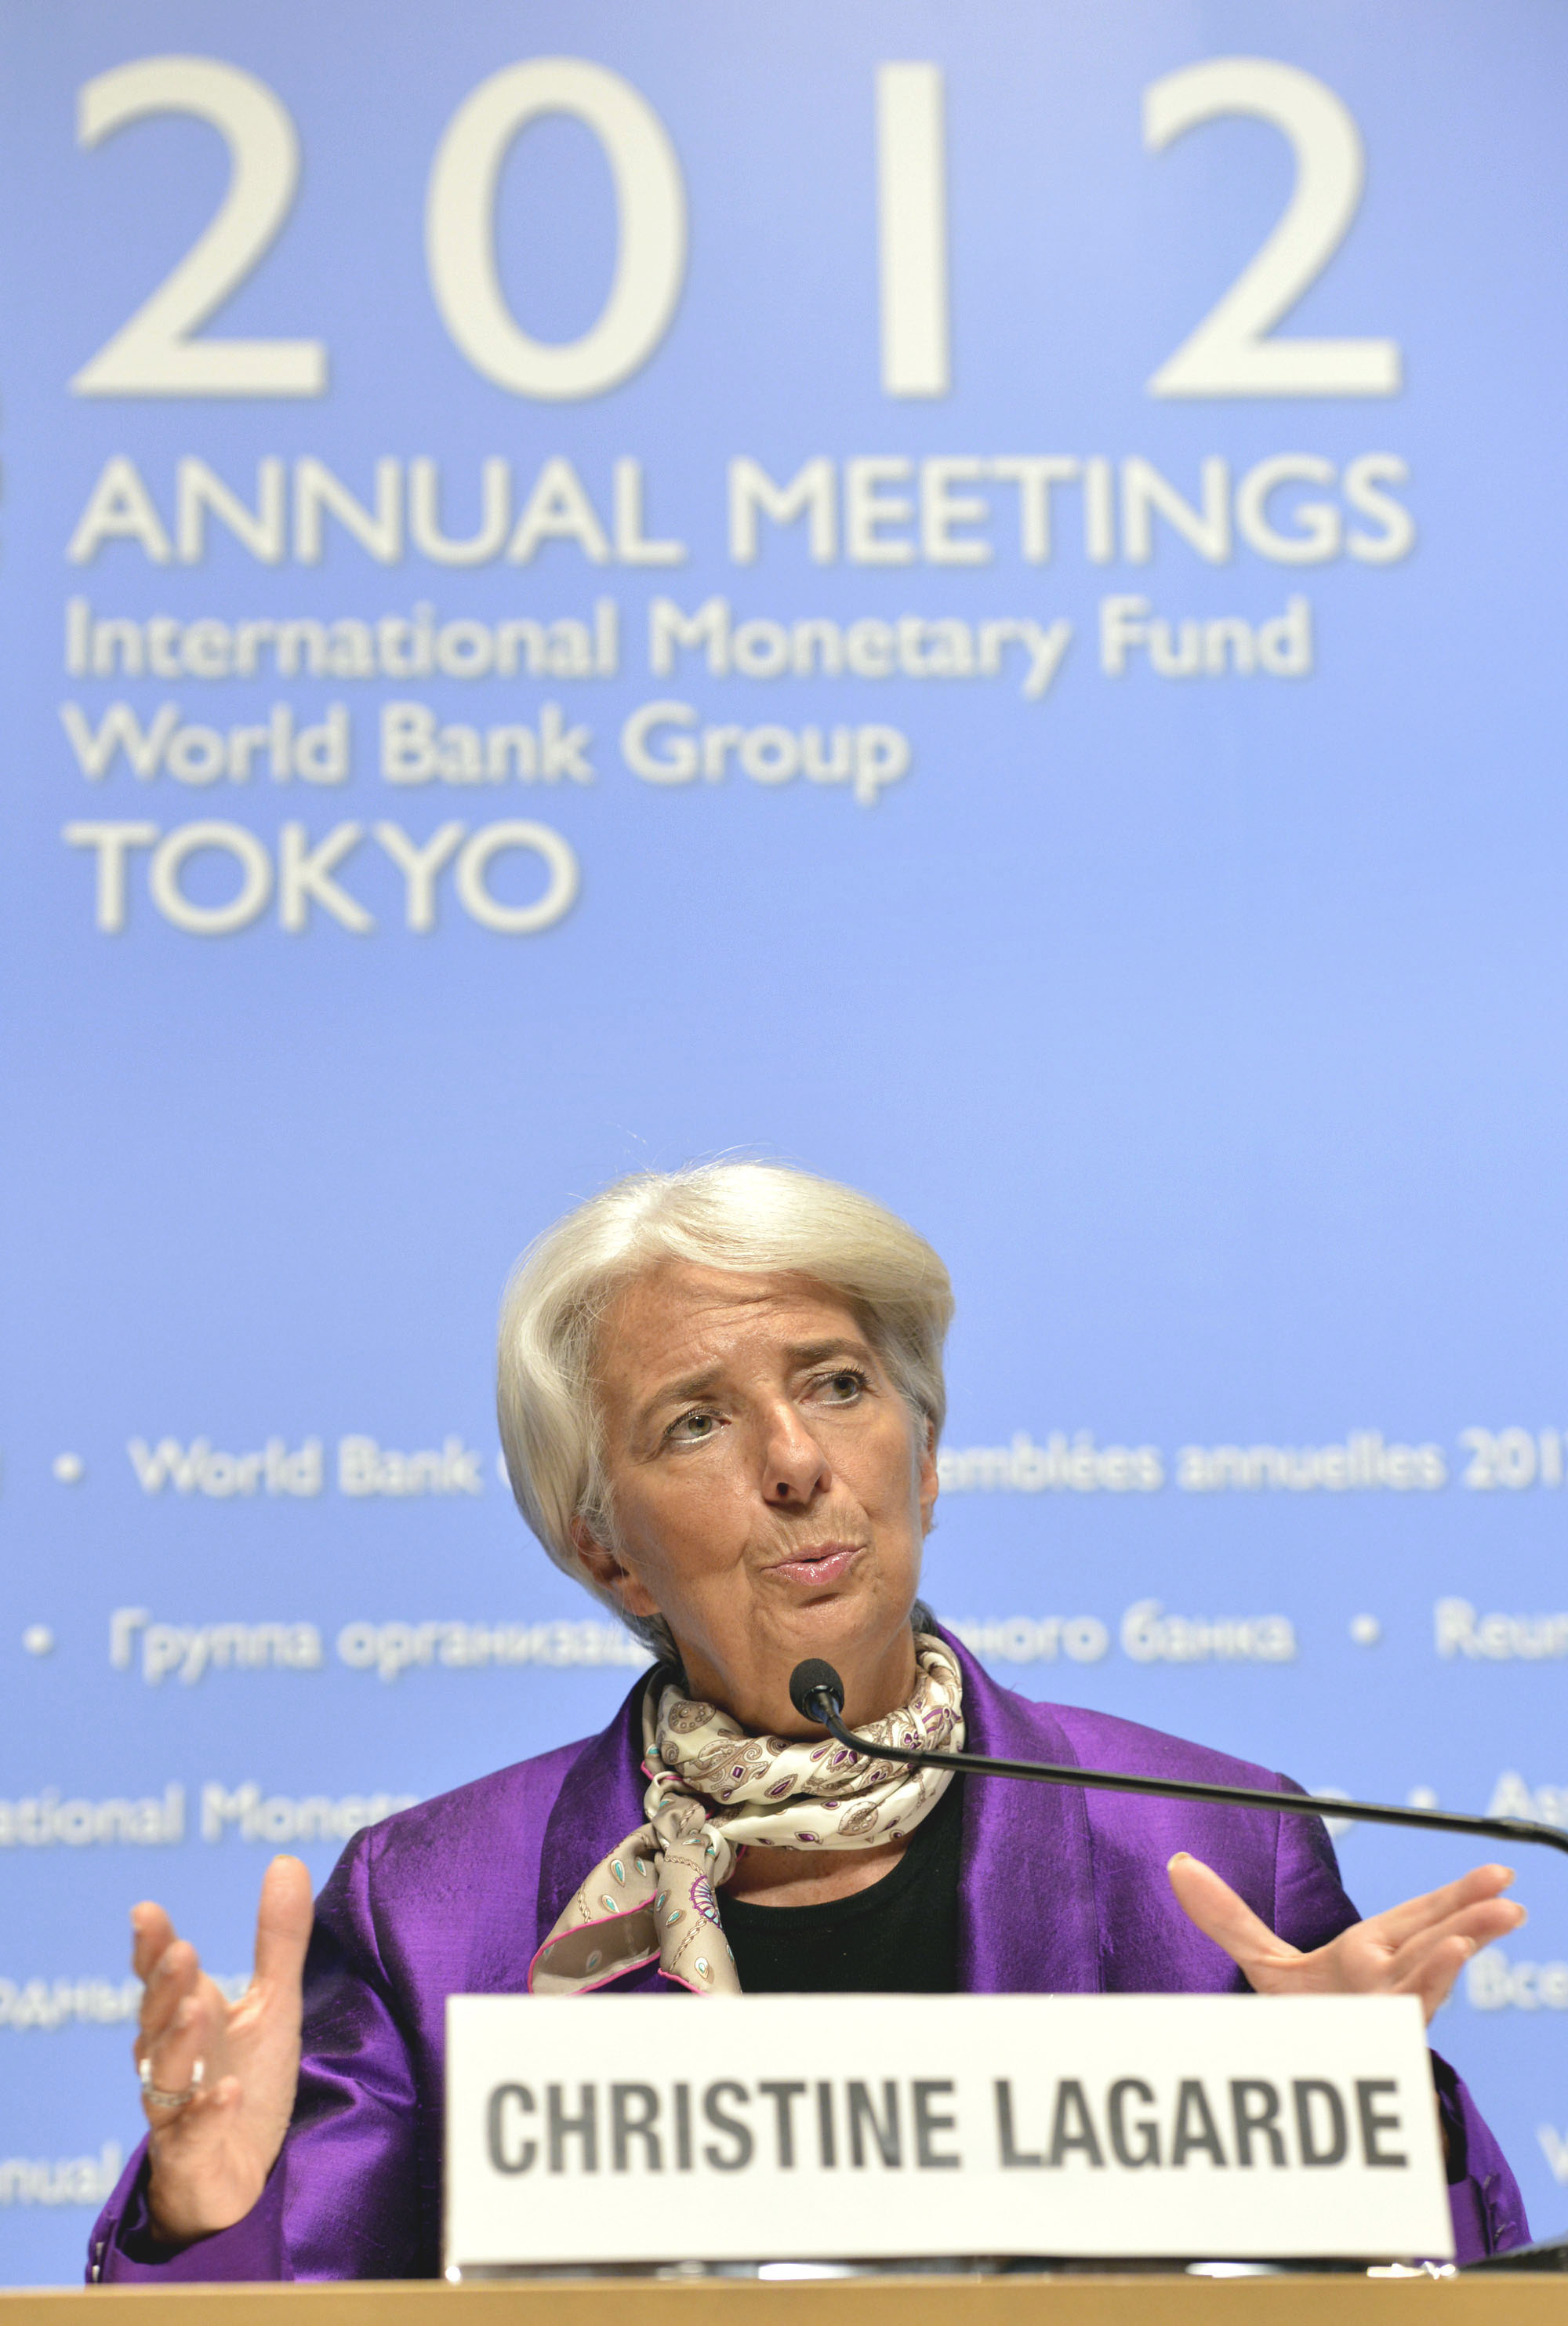 Women's work: Christine Lagarde, managing director of the International Monetary Fund, speaks during the IMF's annual meeting in Tokyo. | KYODO